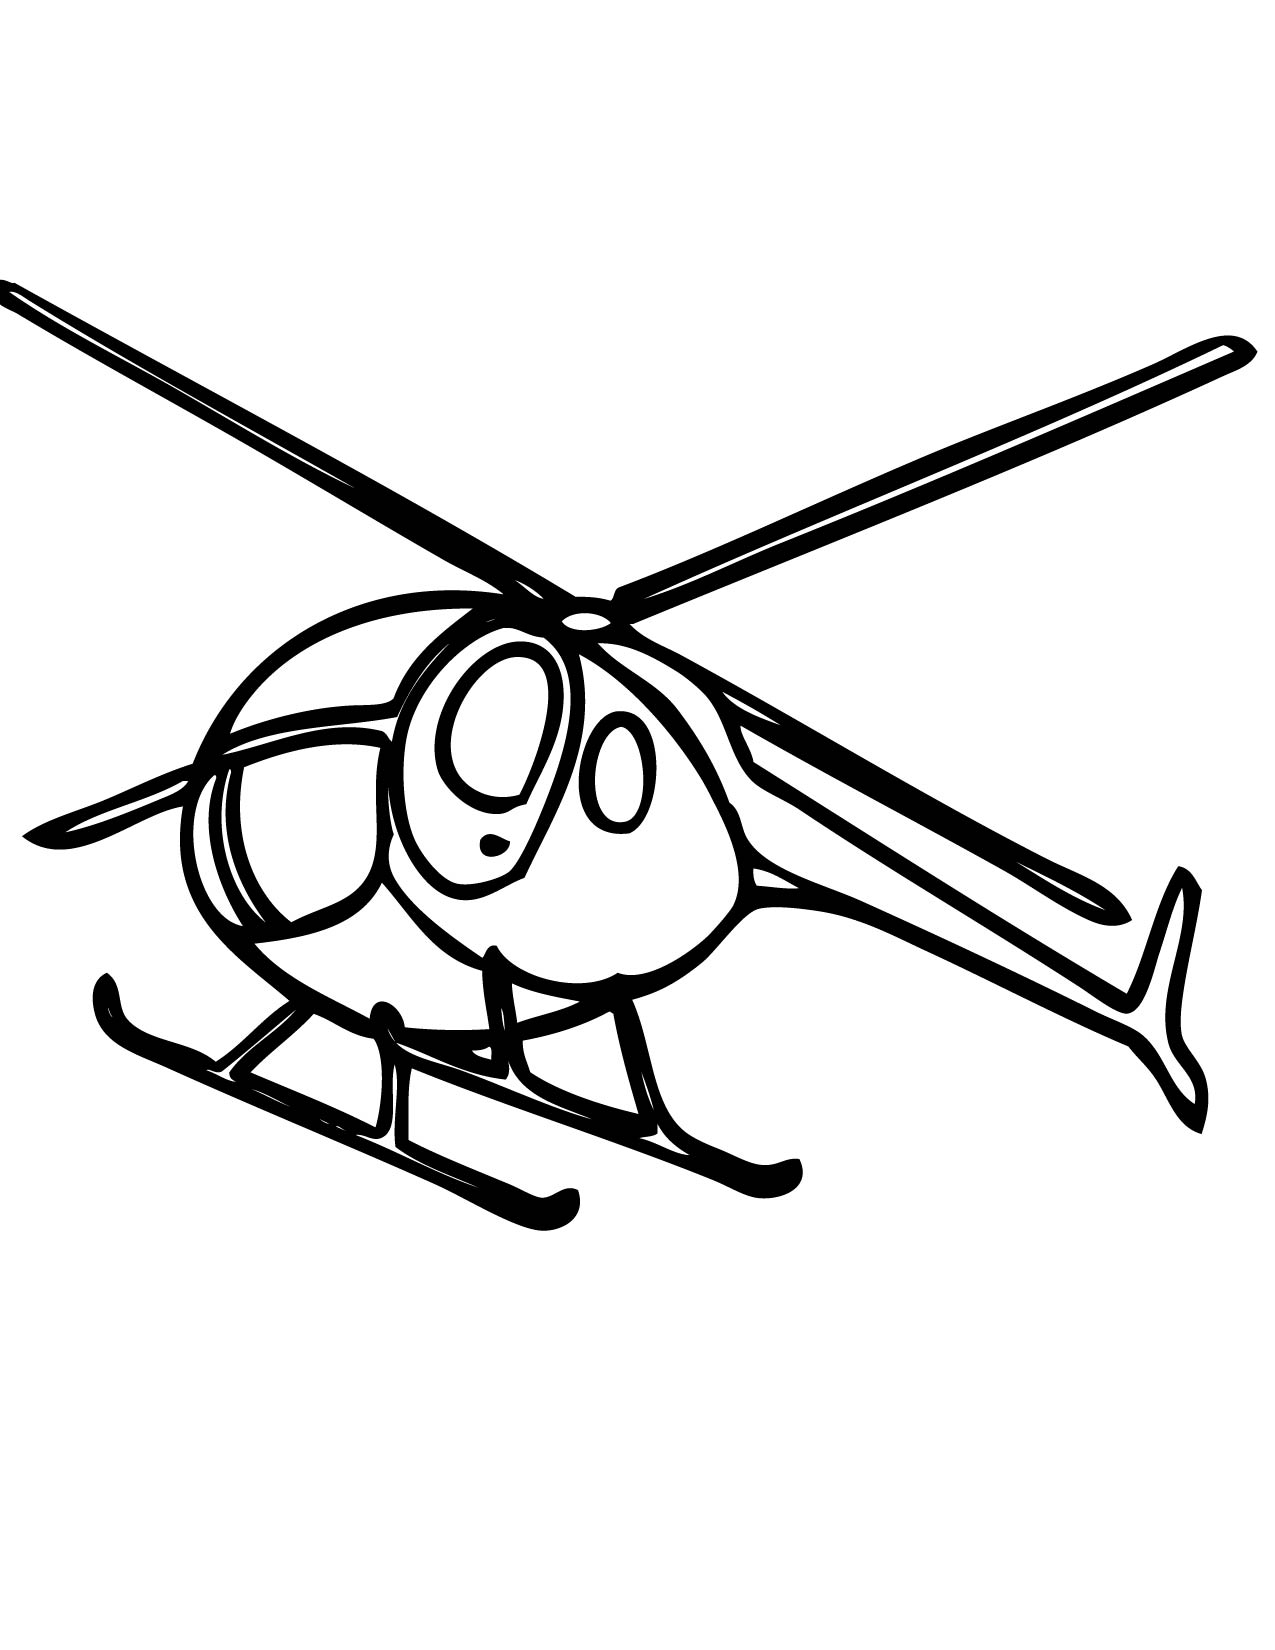 1275x1650 Coloring Pages Coloring Pages Draw A Helicopter Drawn Line